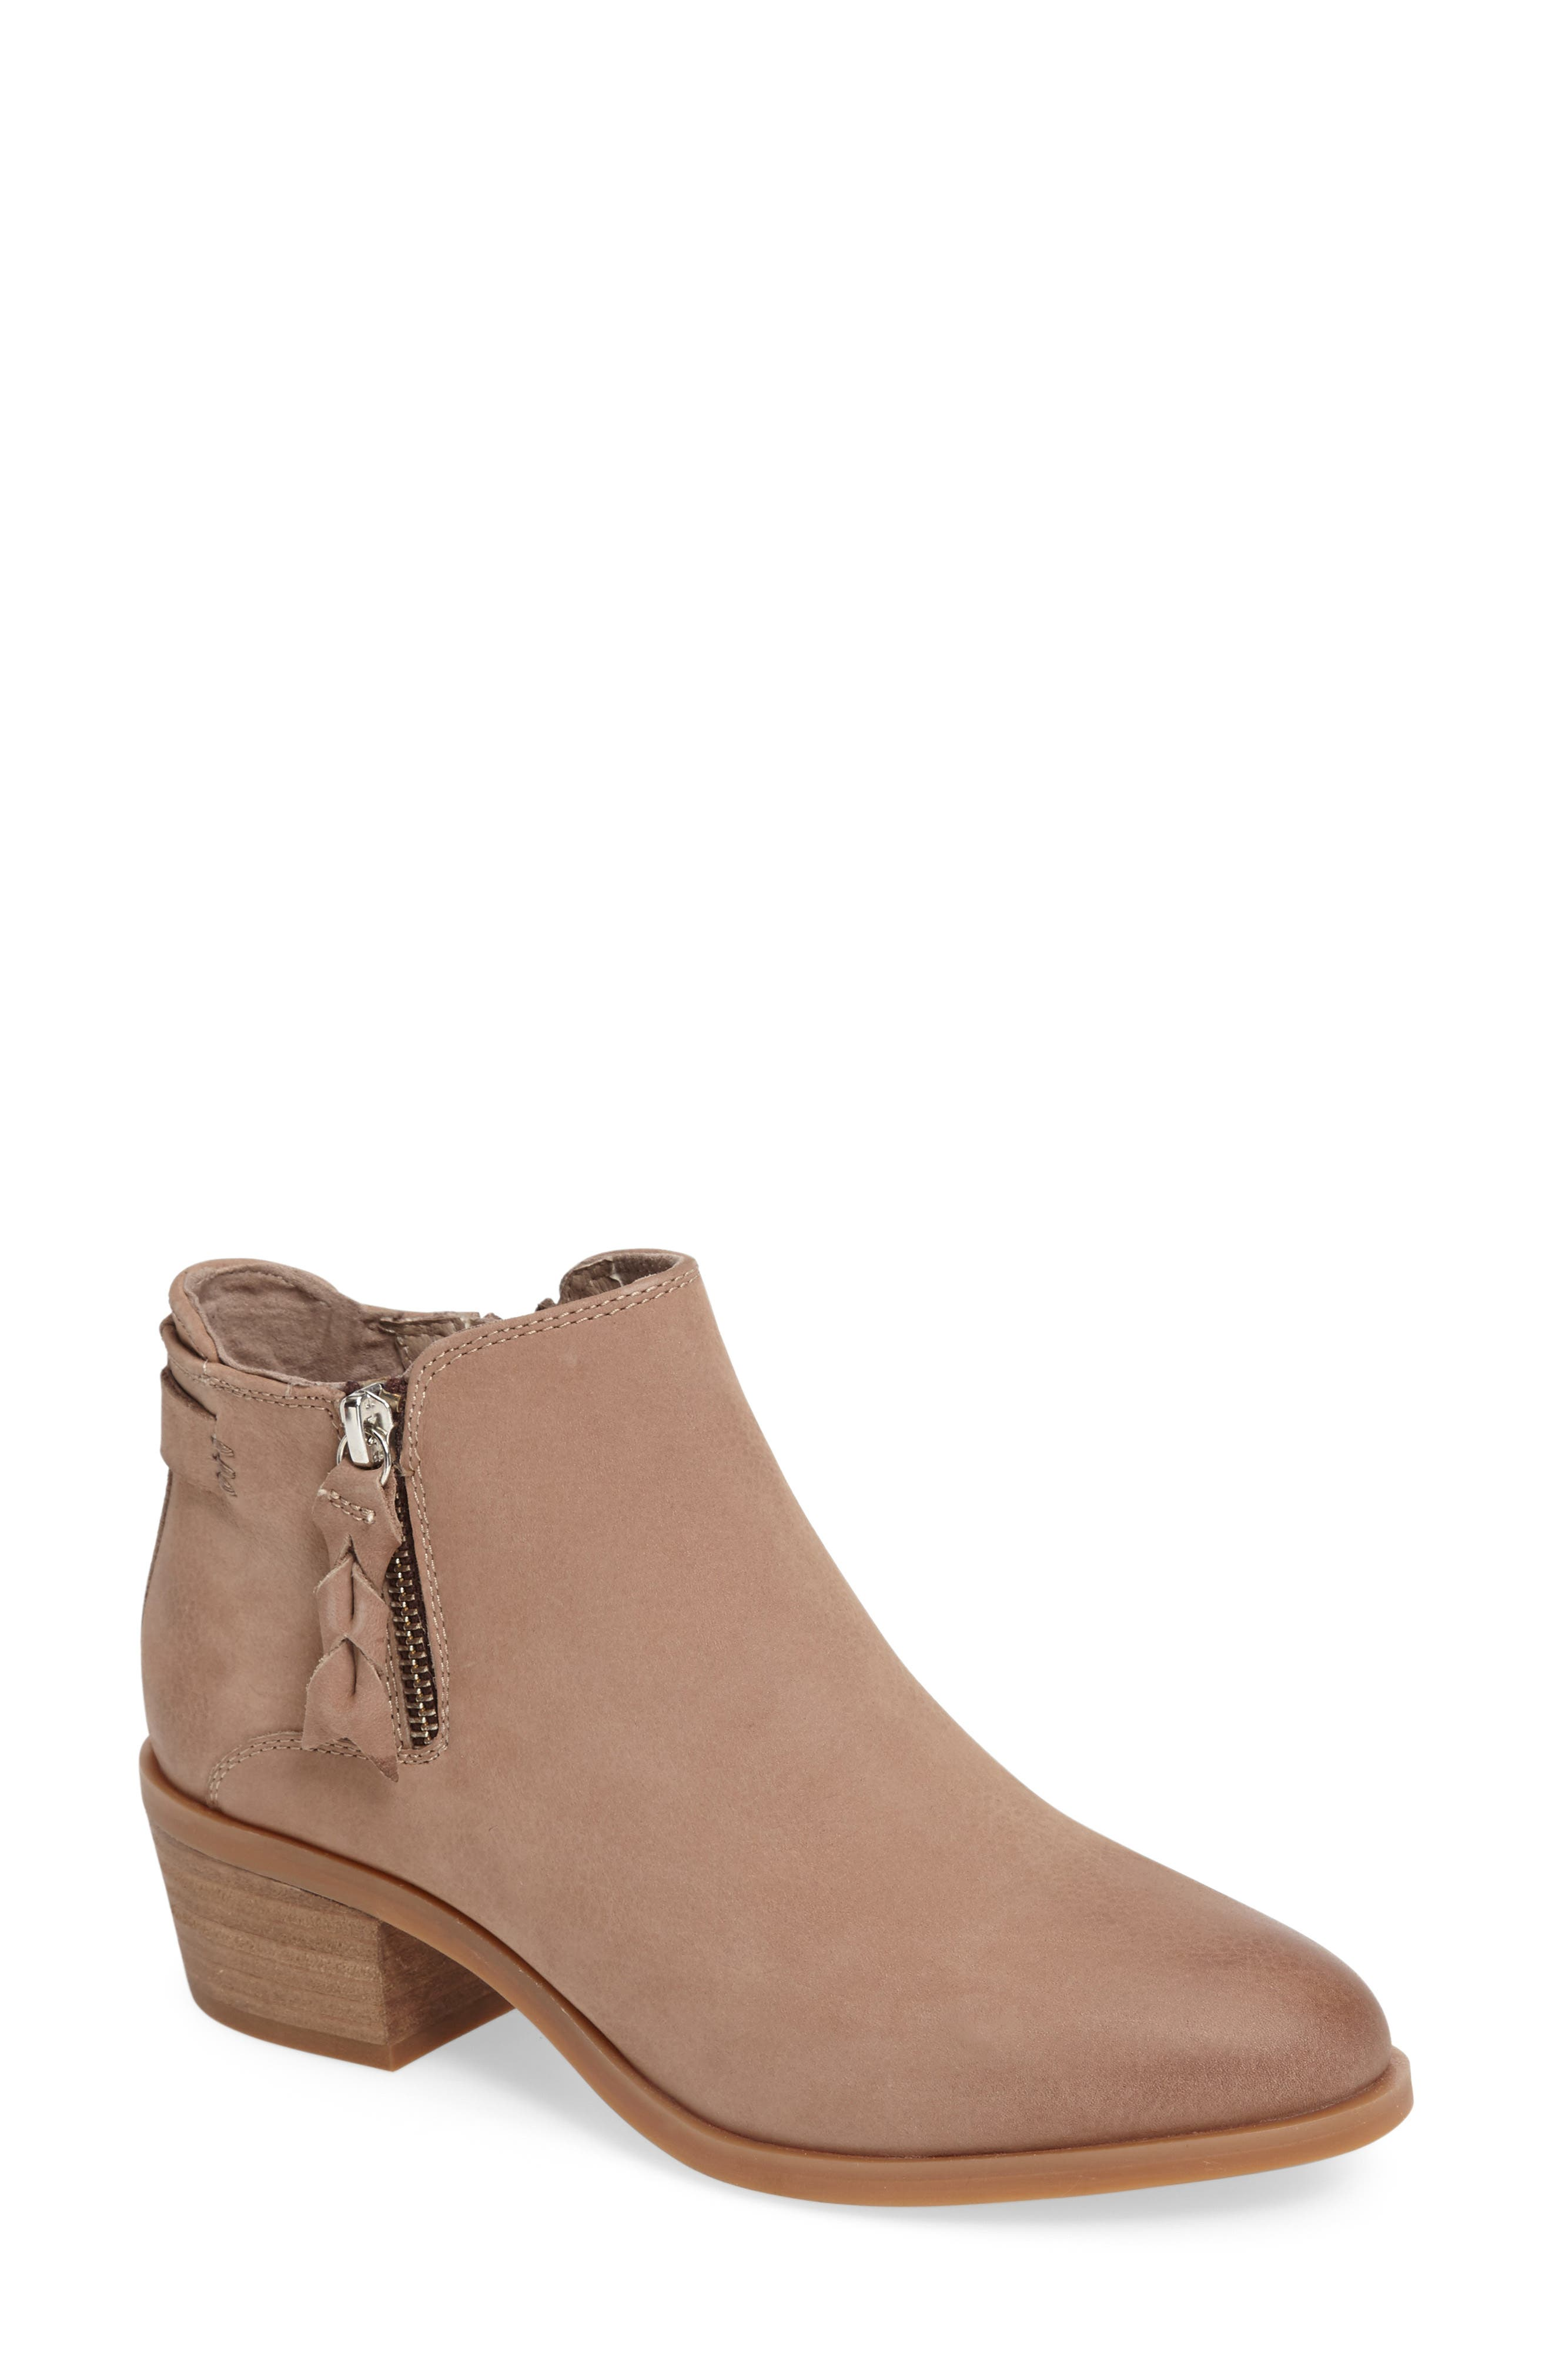 Kyle Bootie,                         Main,                         color, Stone Nubuck Leather